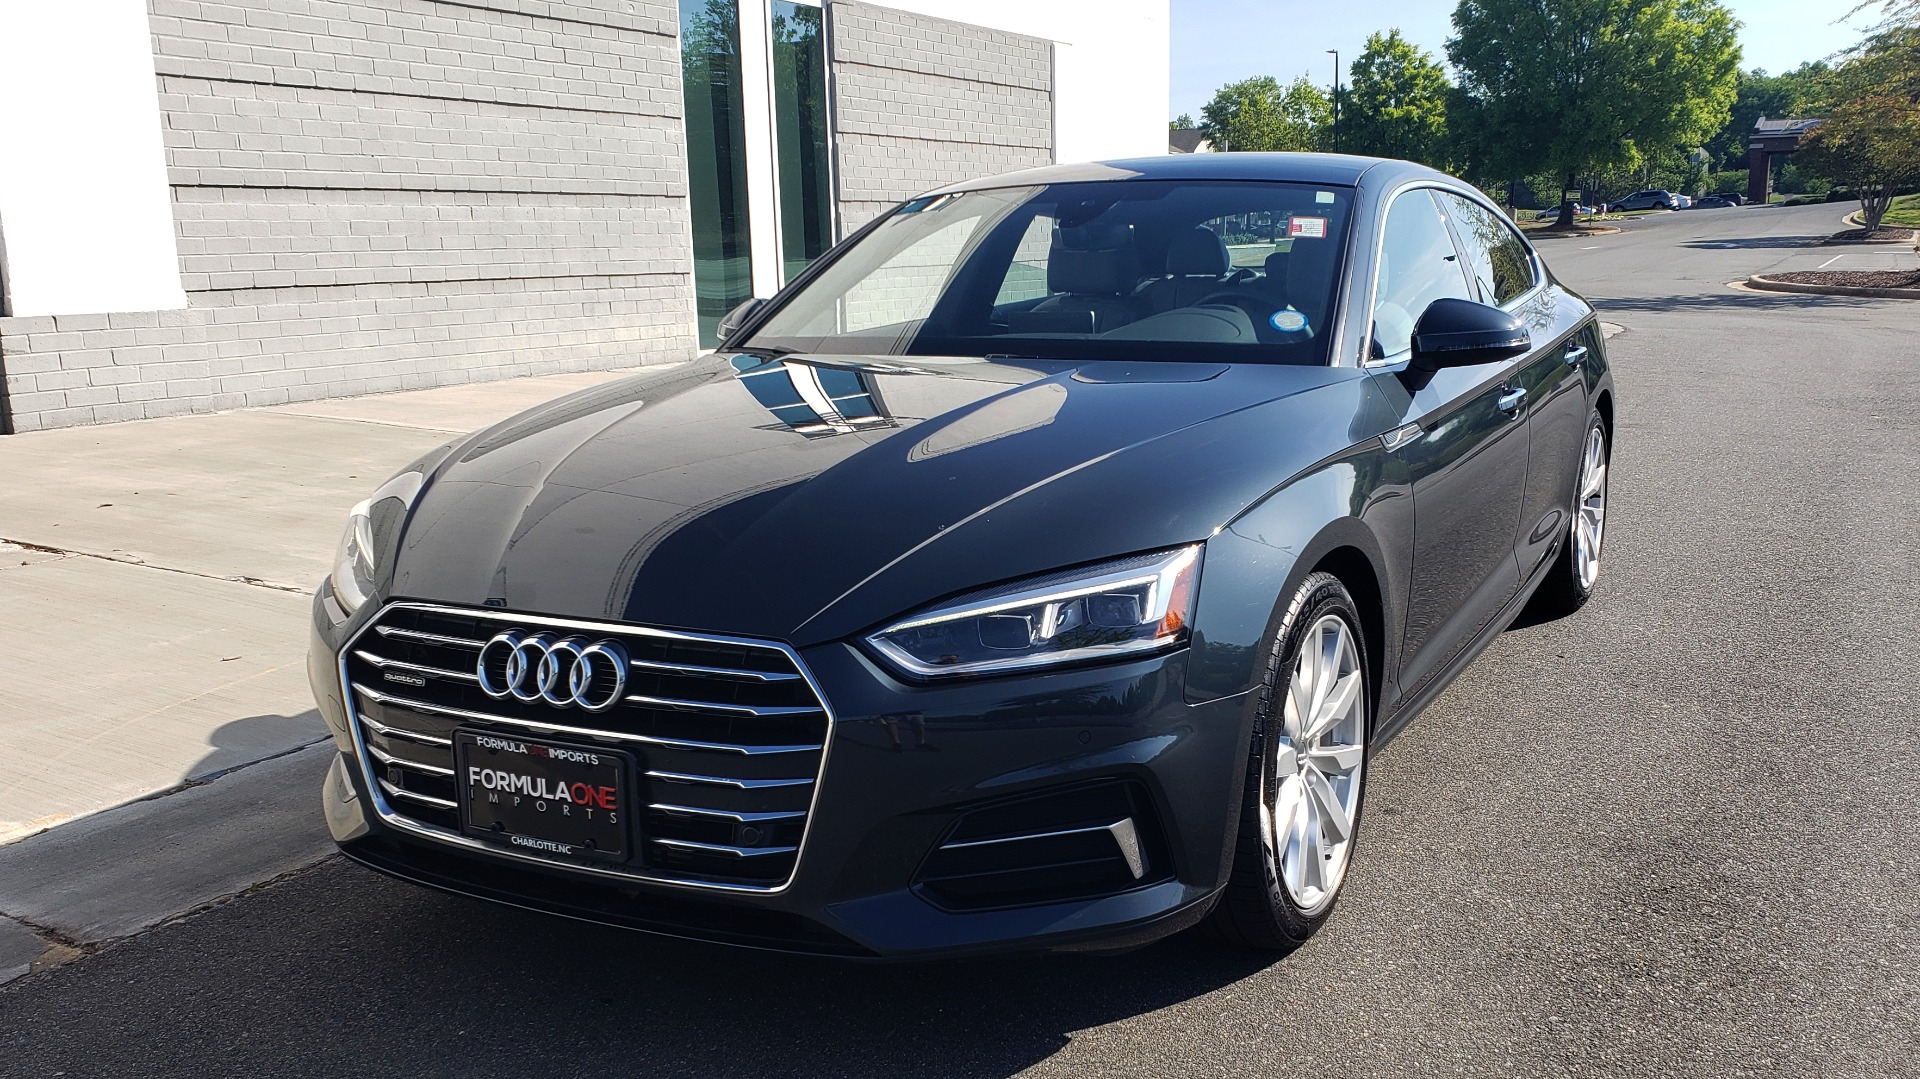 Used 2018 Audi A5 SPORTBACK PREMIUM PLUS 2.0T / AWD / NAV / B&O SND / SUNROOF / REARVIEW for sale Sold at Formula Imports in Charlotte NC 28227 2